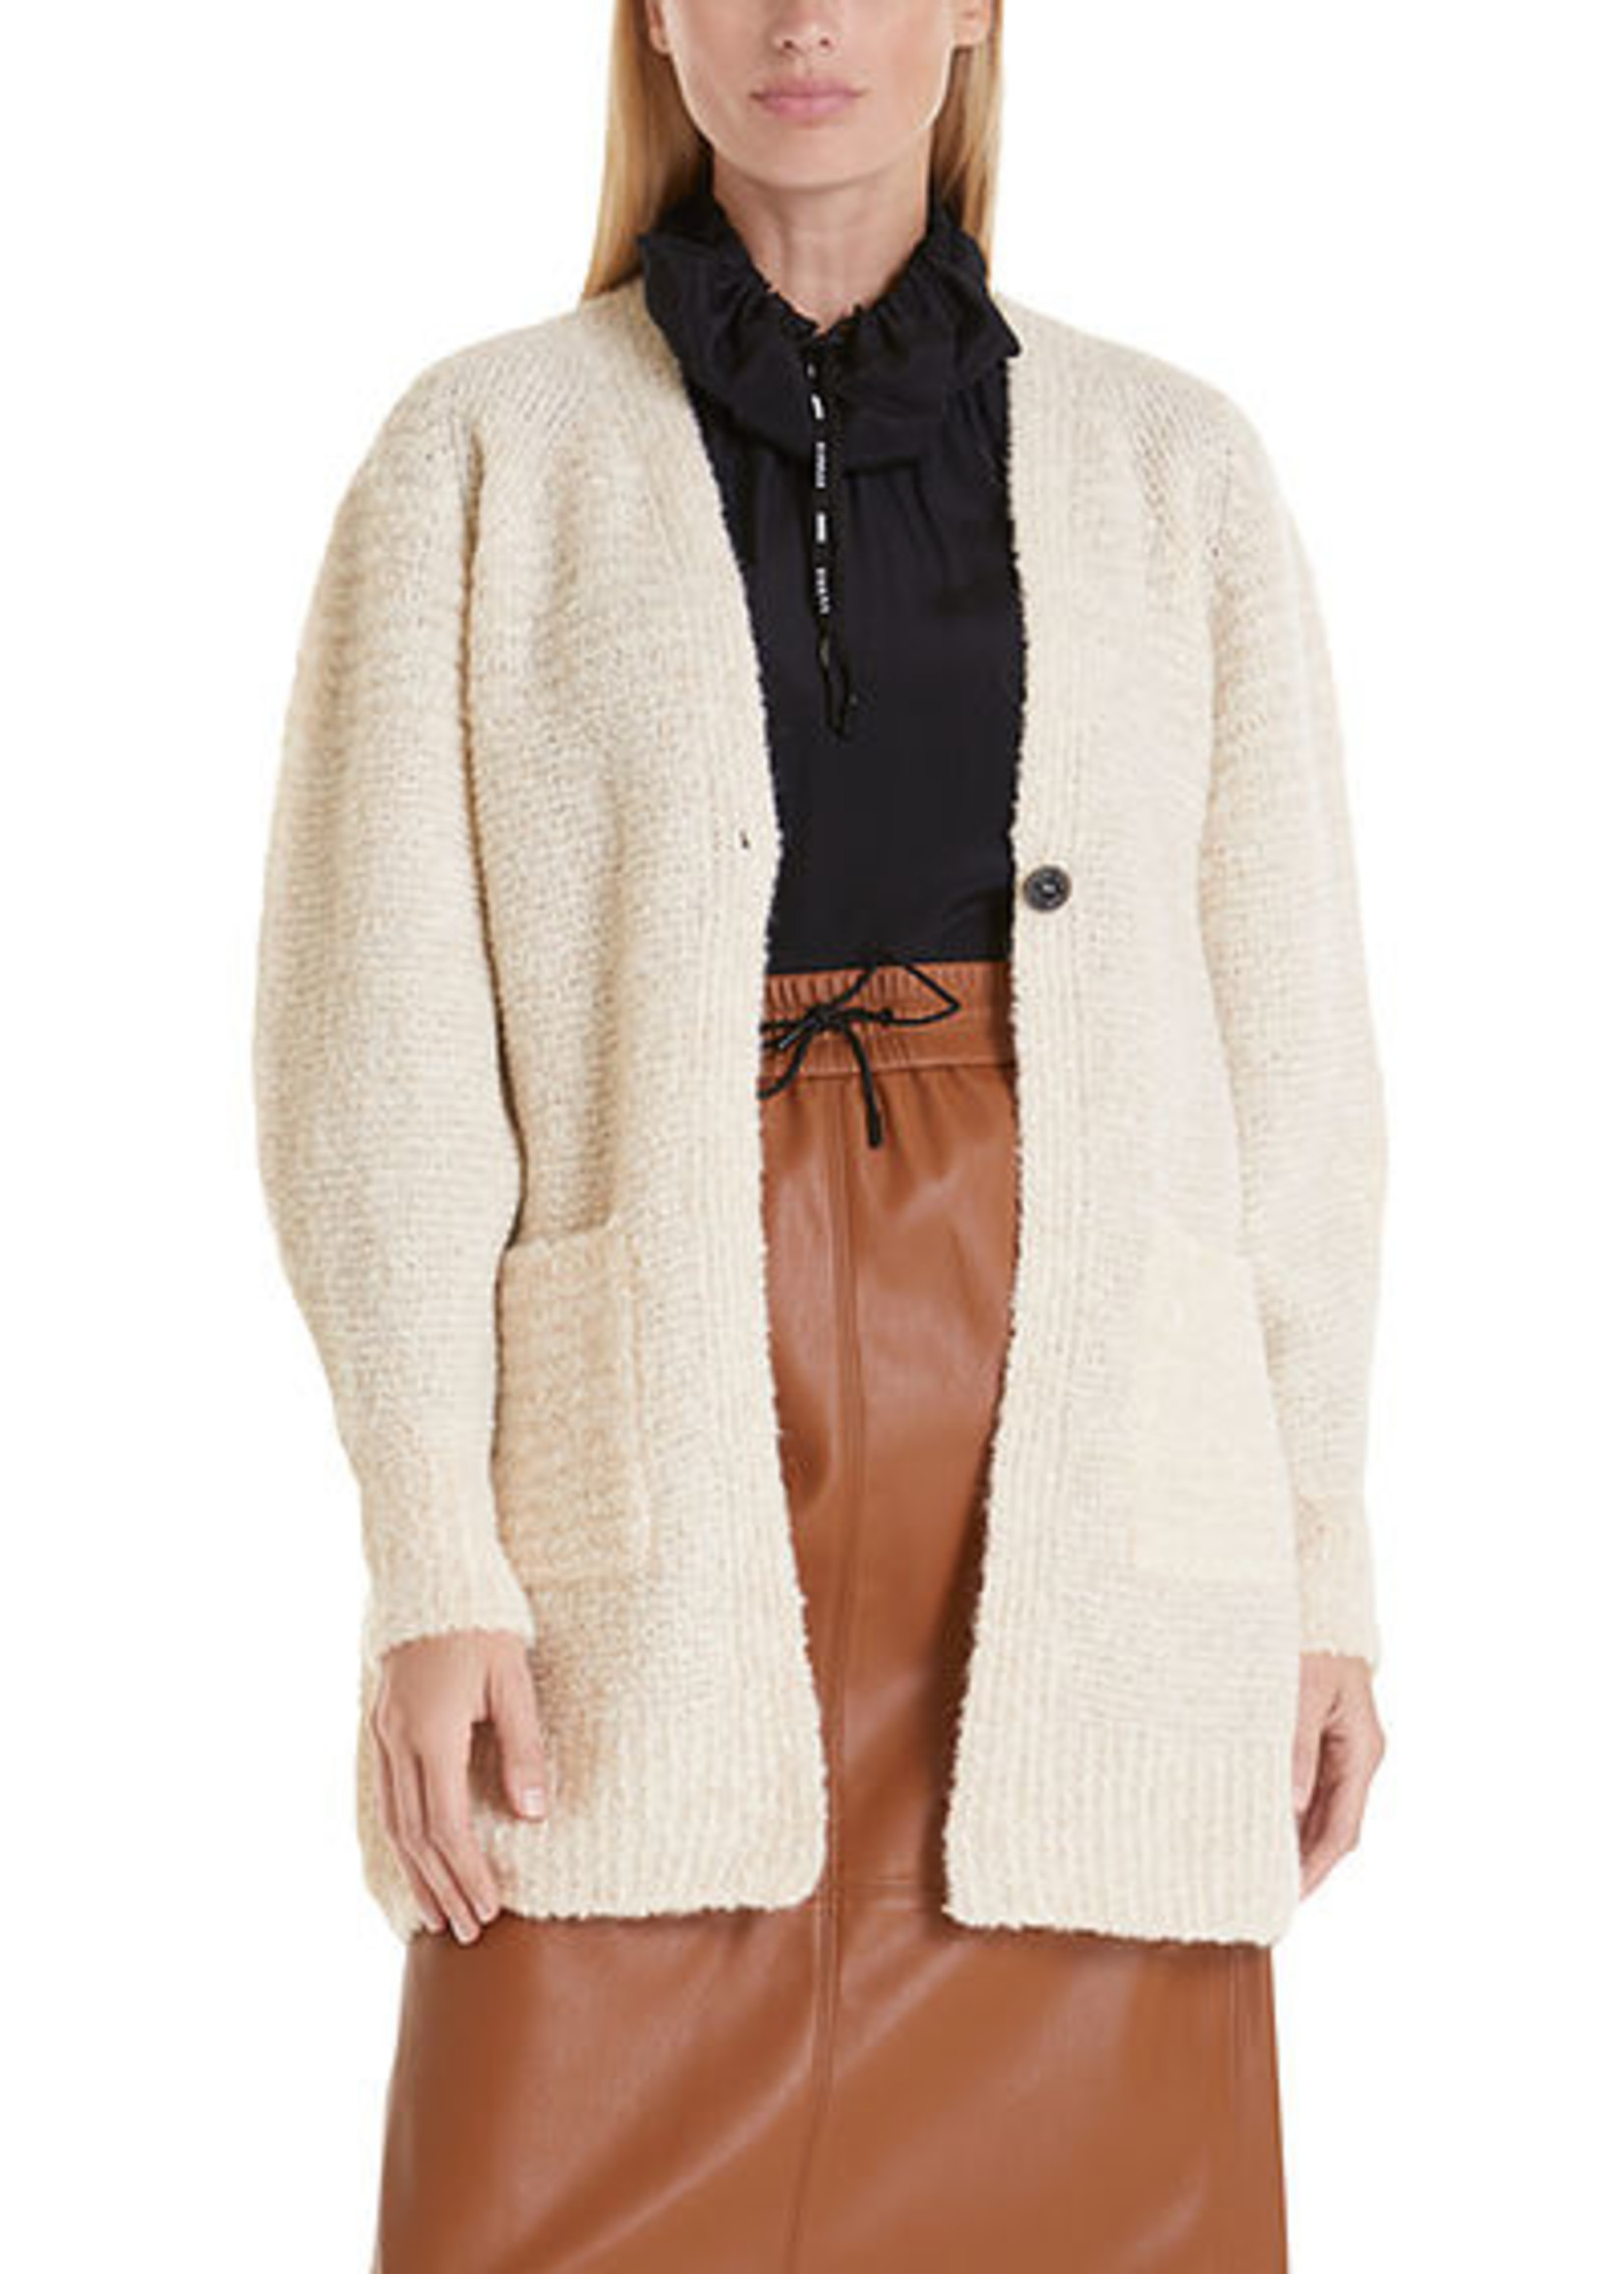 Marccain Sports Jack RS 31.35 M23 off-white